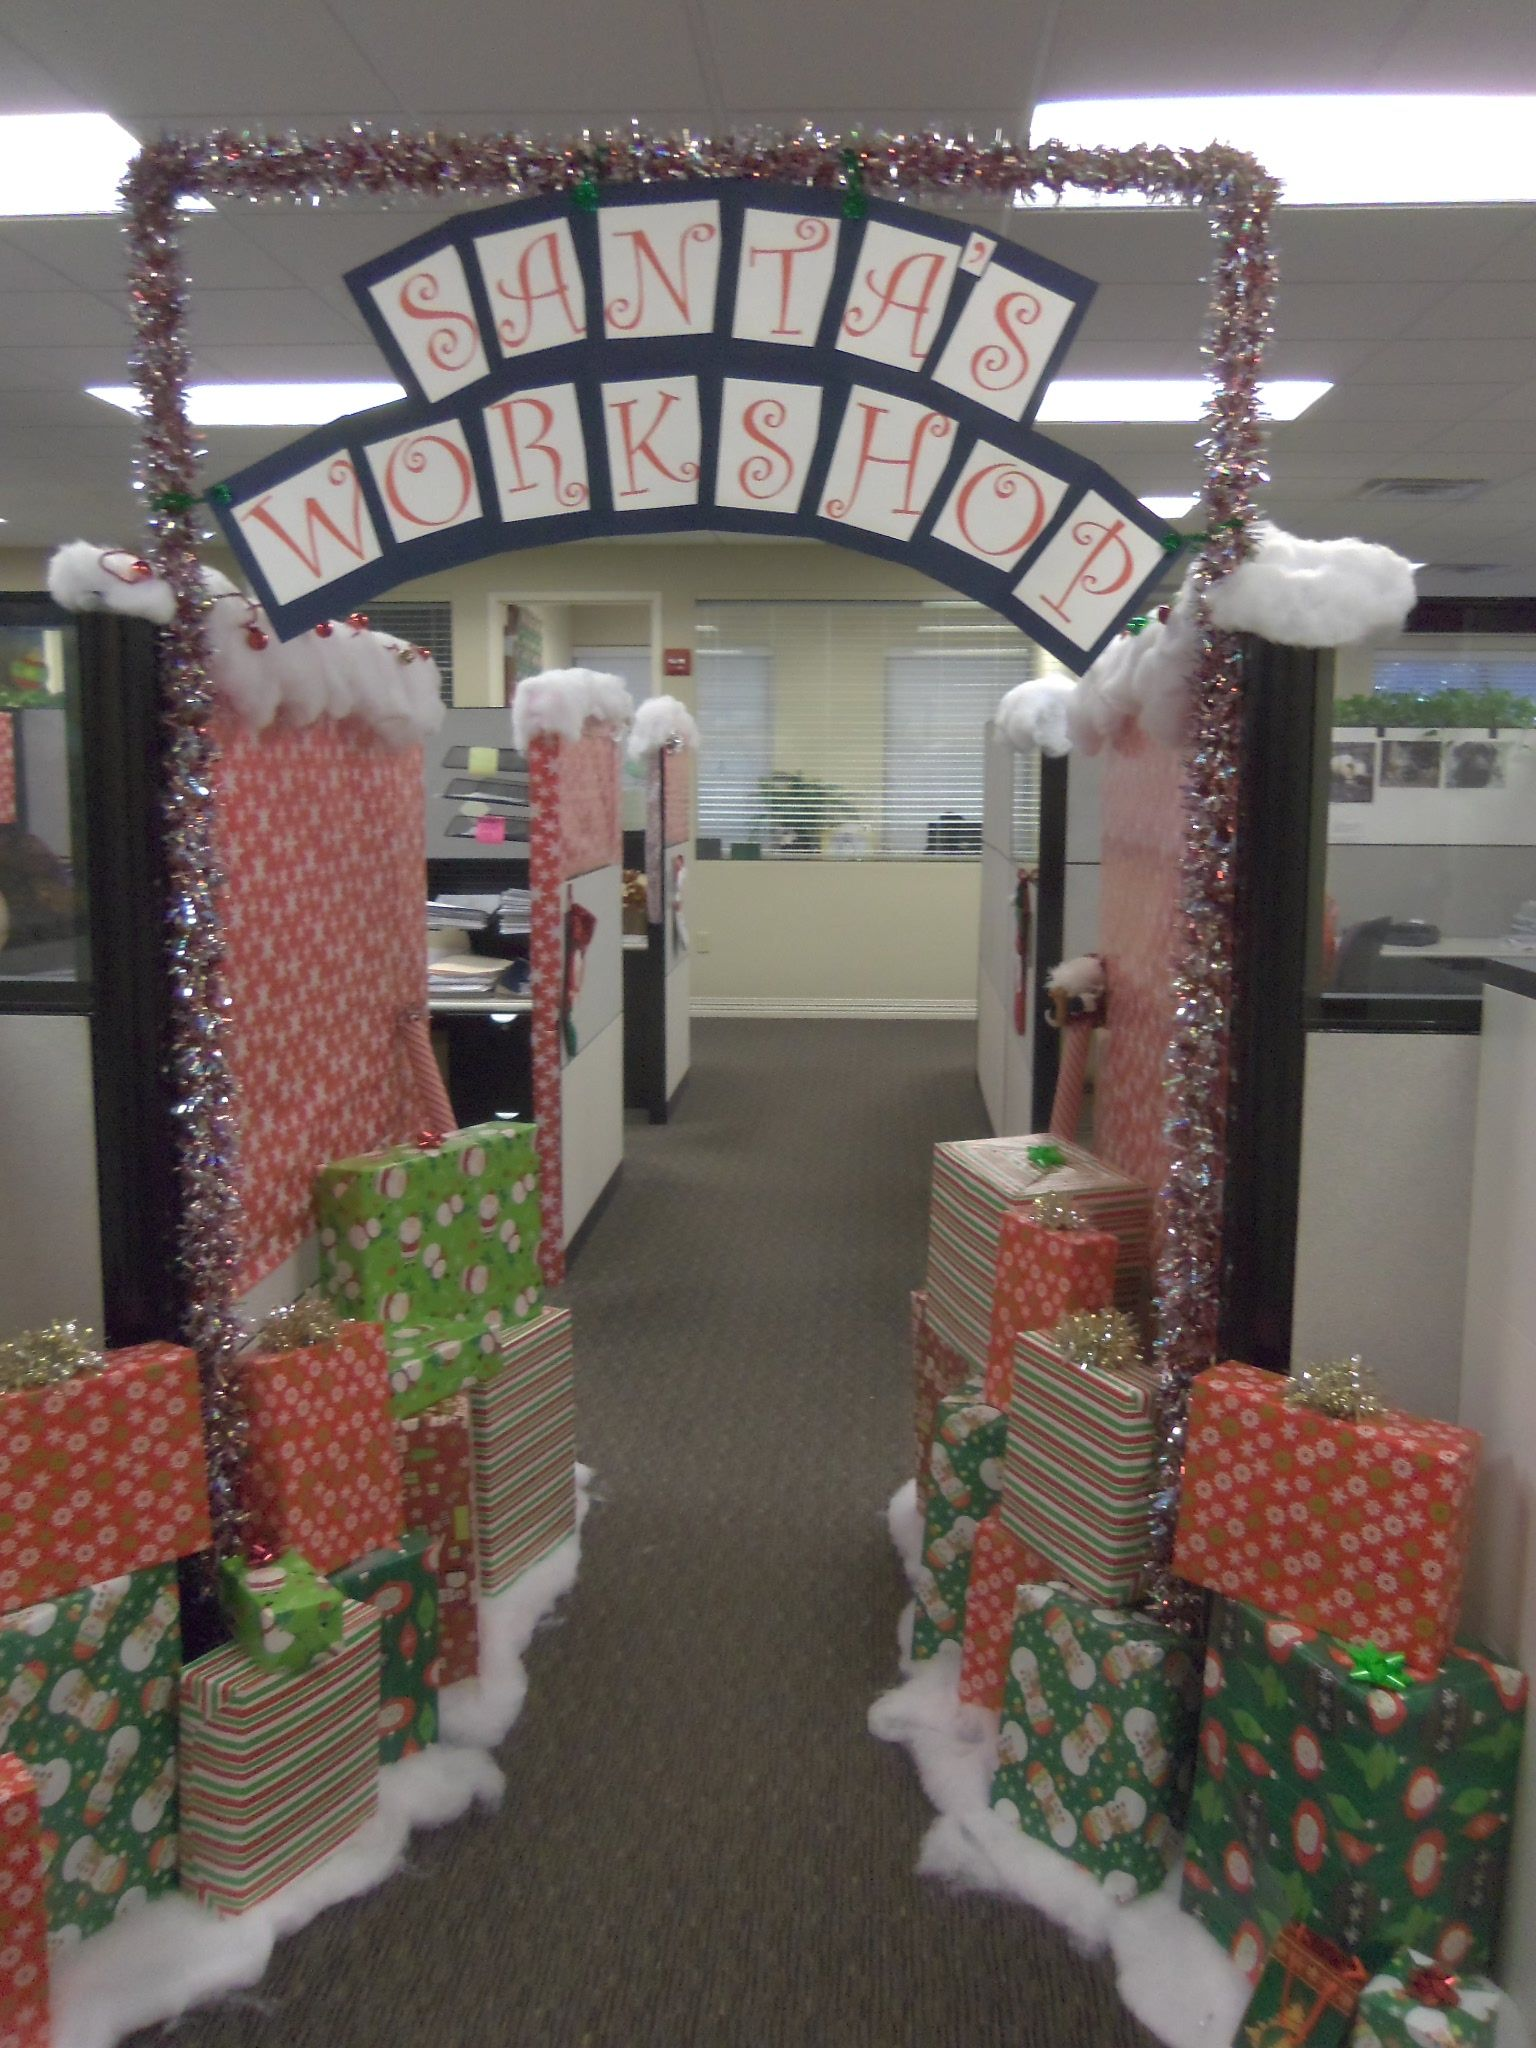 christmas decorations can boost morale at the office leland management embraces the season and encourages the holiday spirit - Office Christmas Decorations